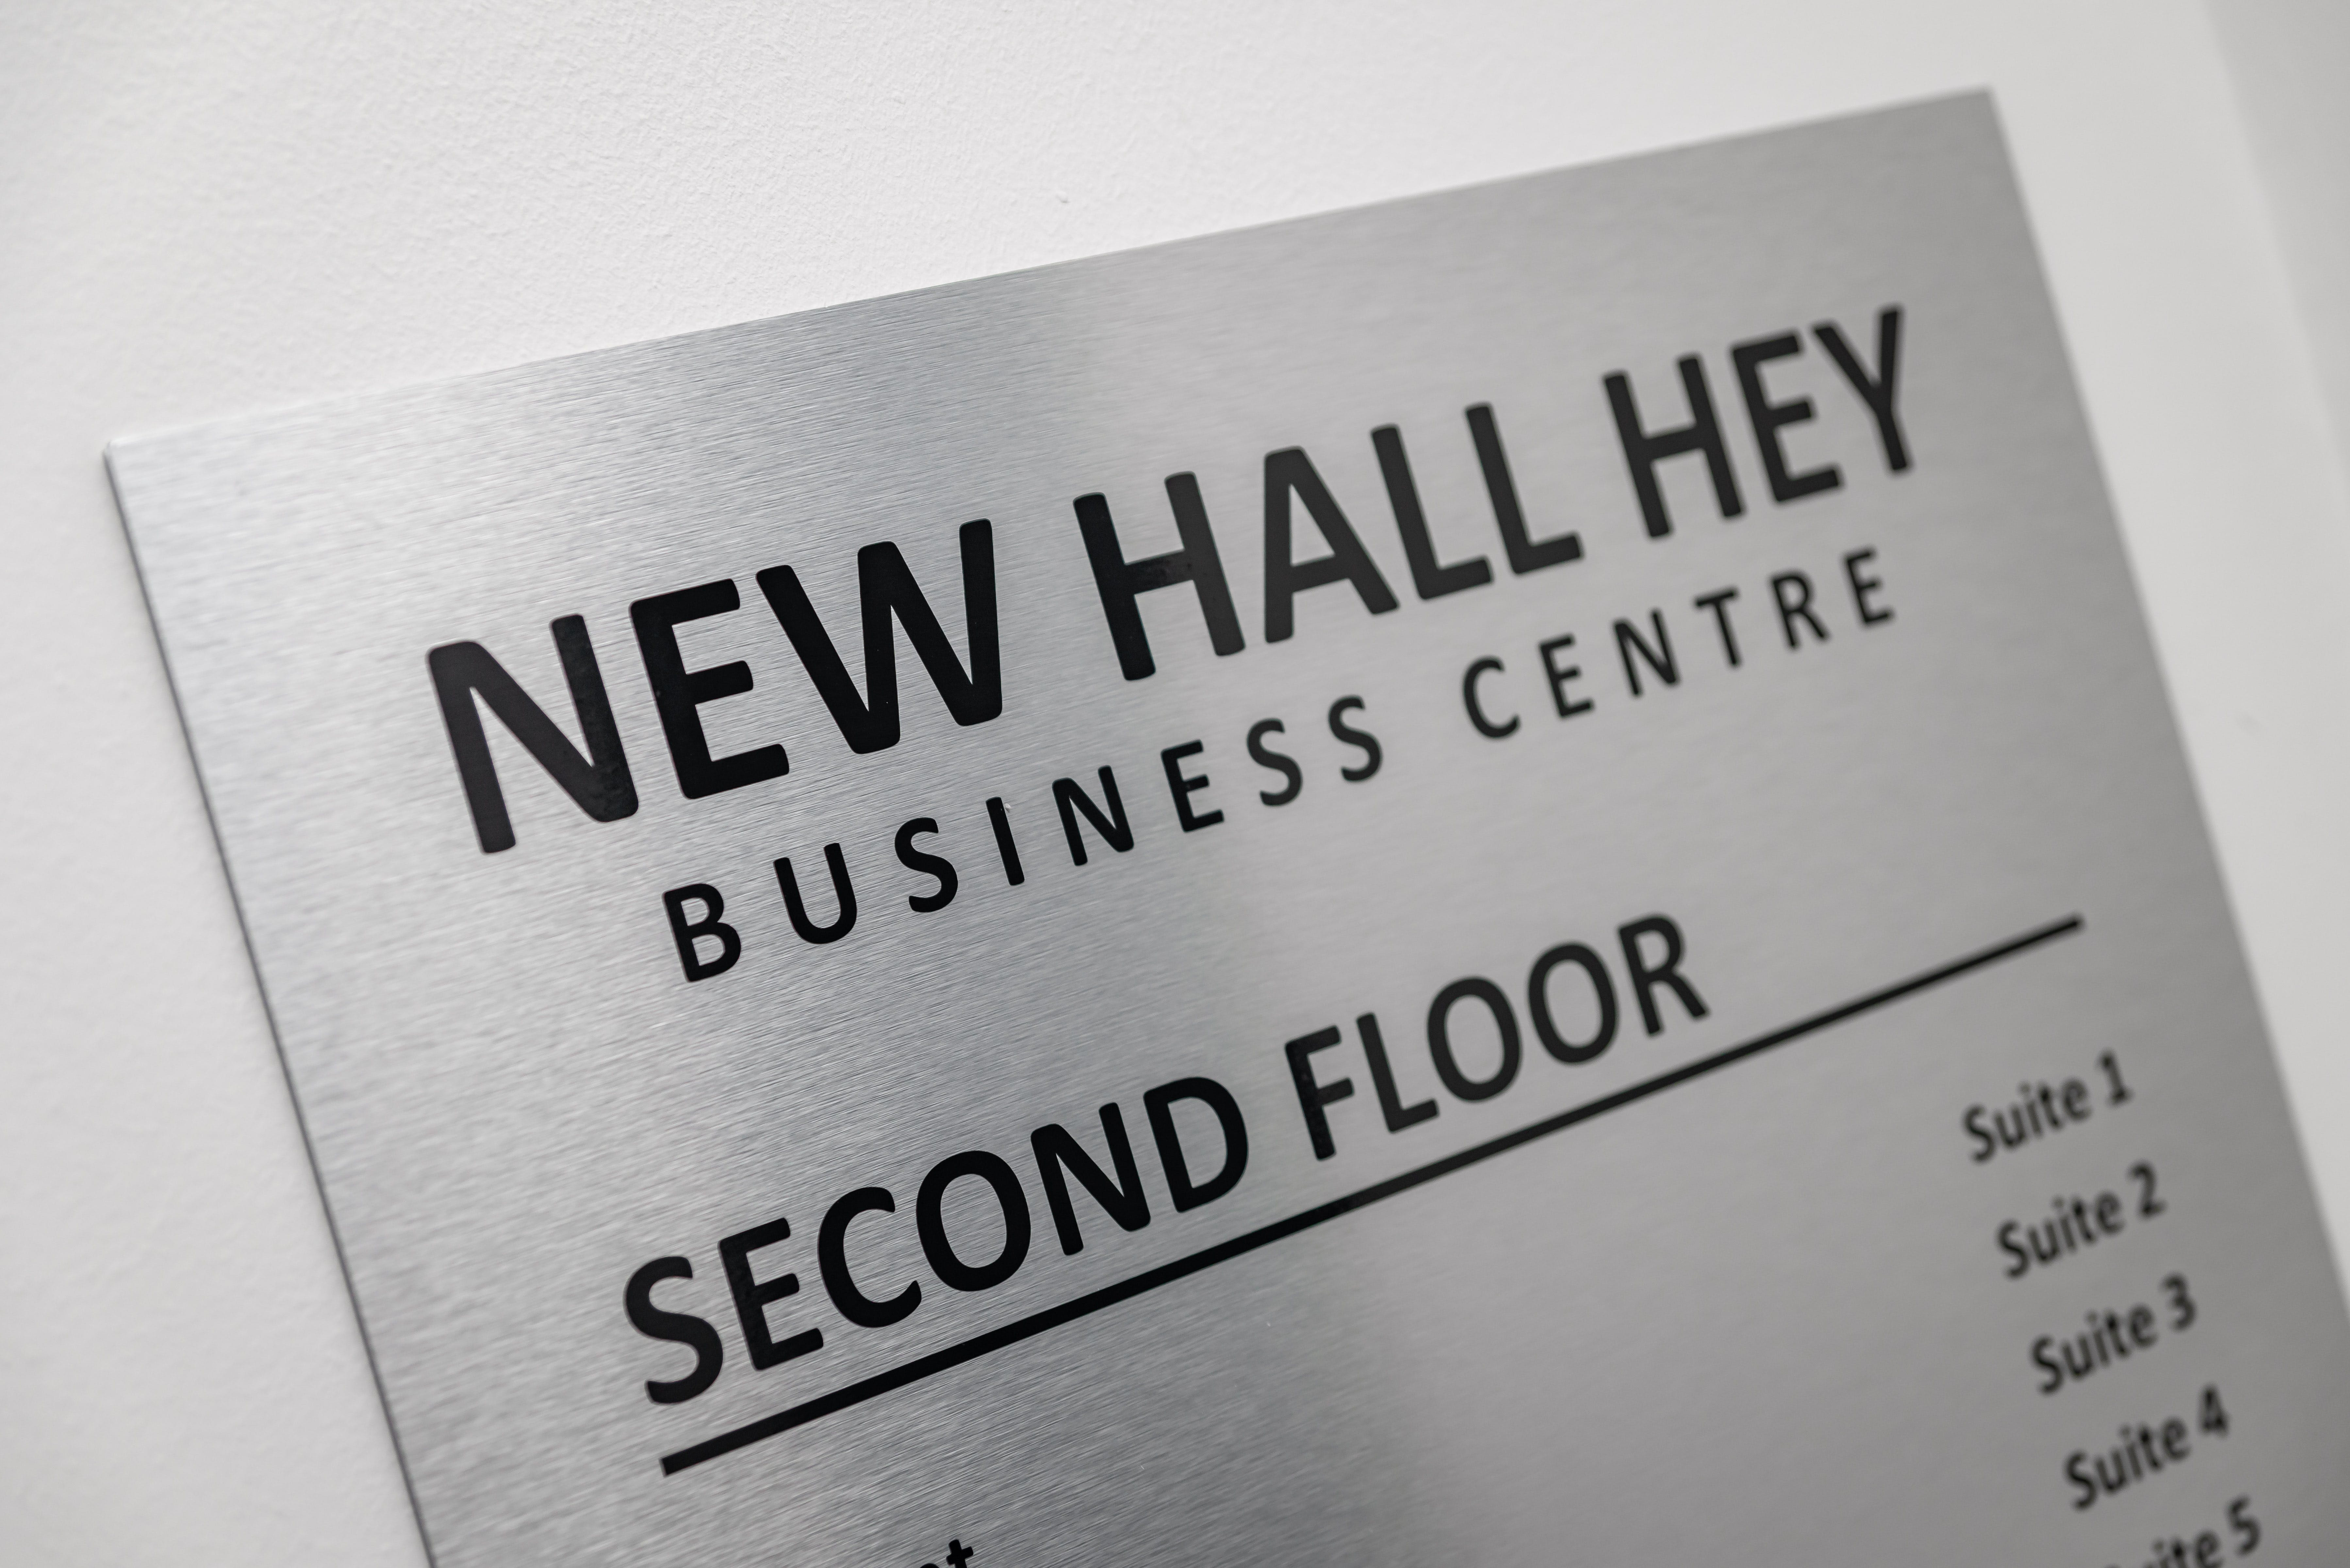 New Hall Hey Business Centre, Rossendale, Office To Let - _SKY5426.jpg